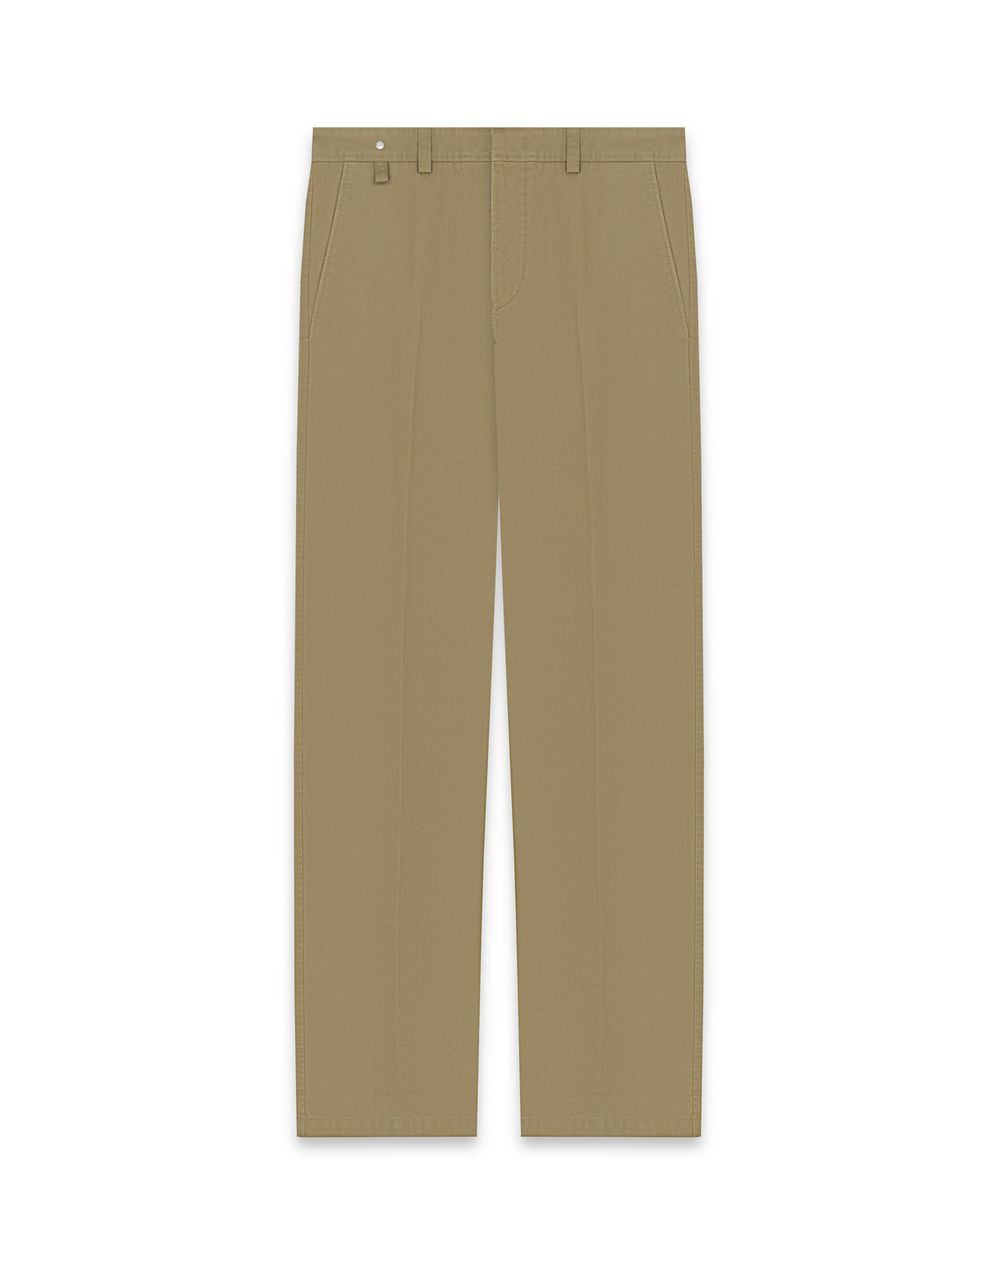 CHINO TROUSERS - Lanvin